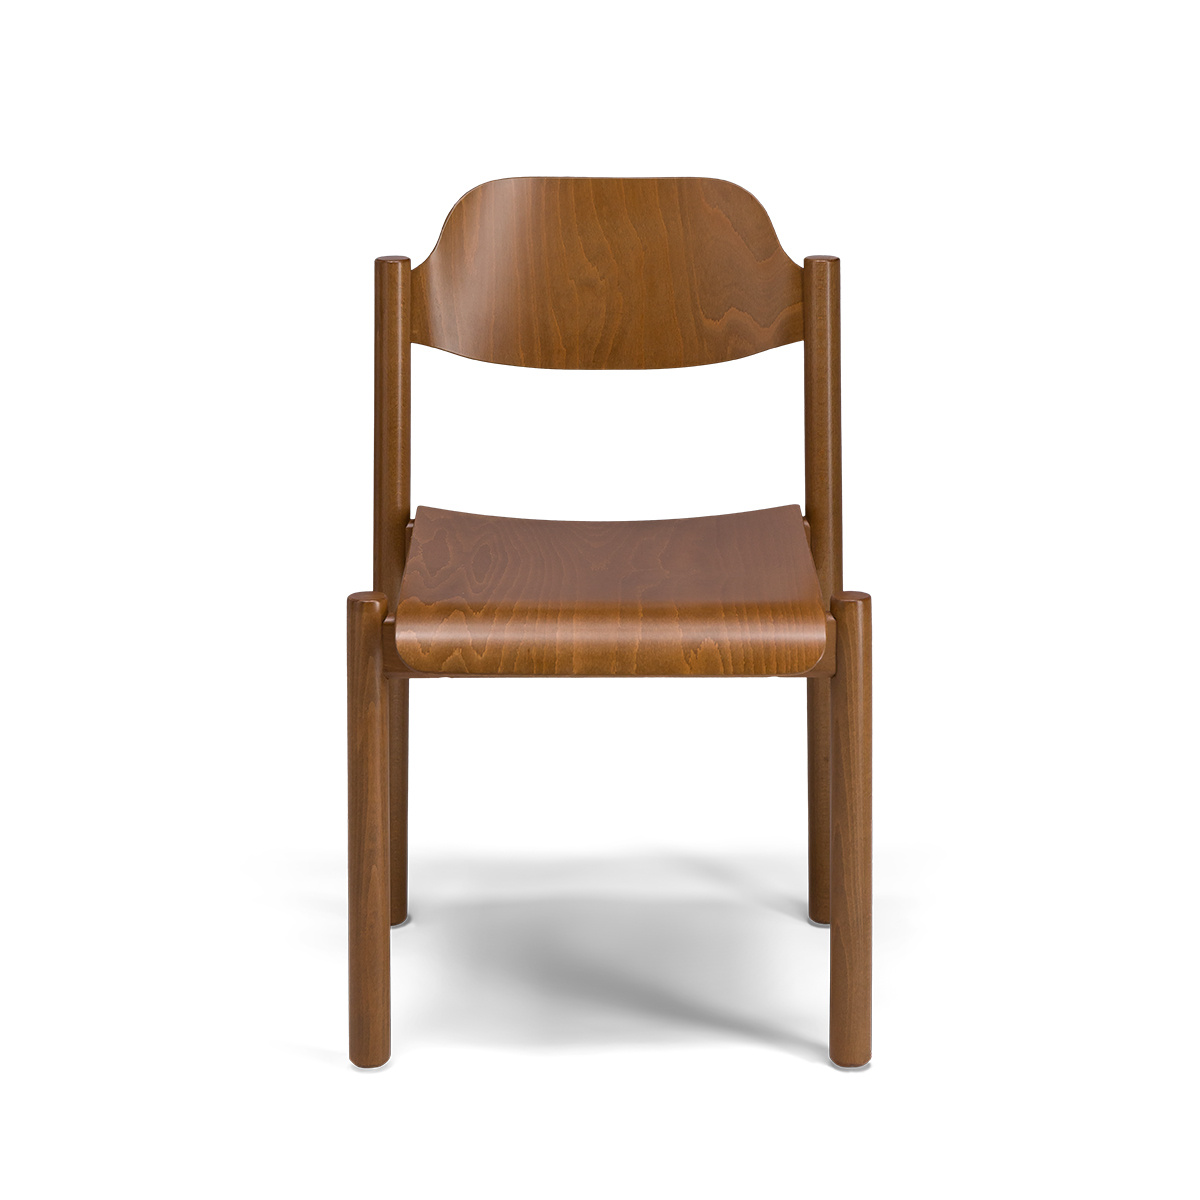 Achille chair in brown wood